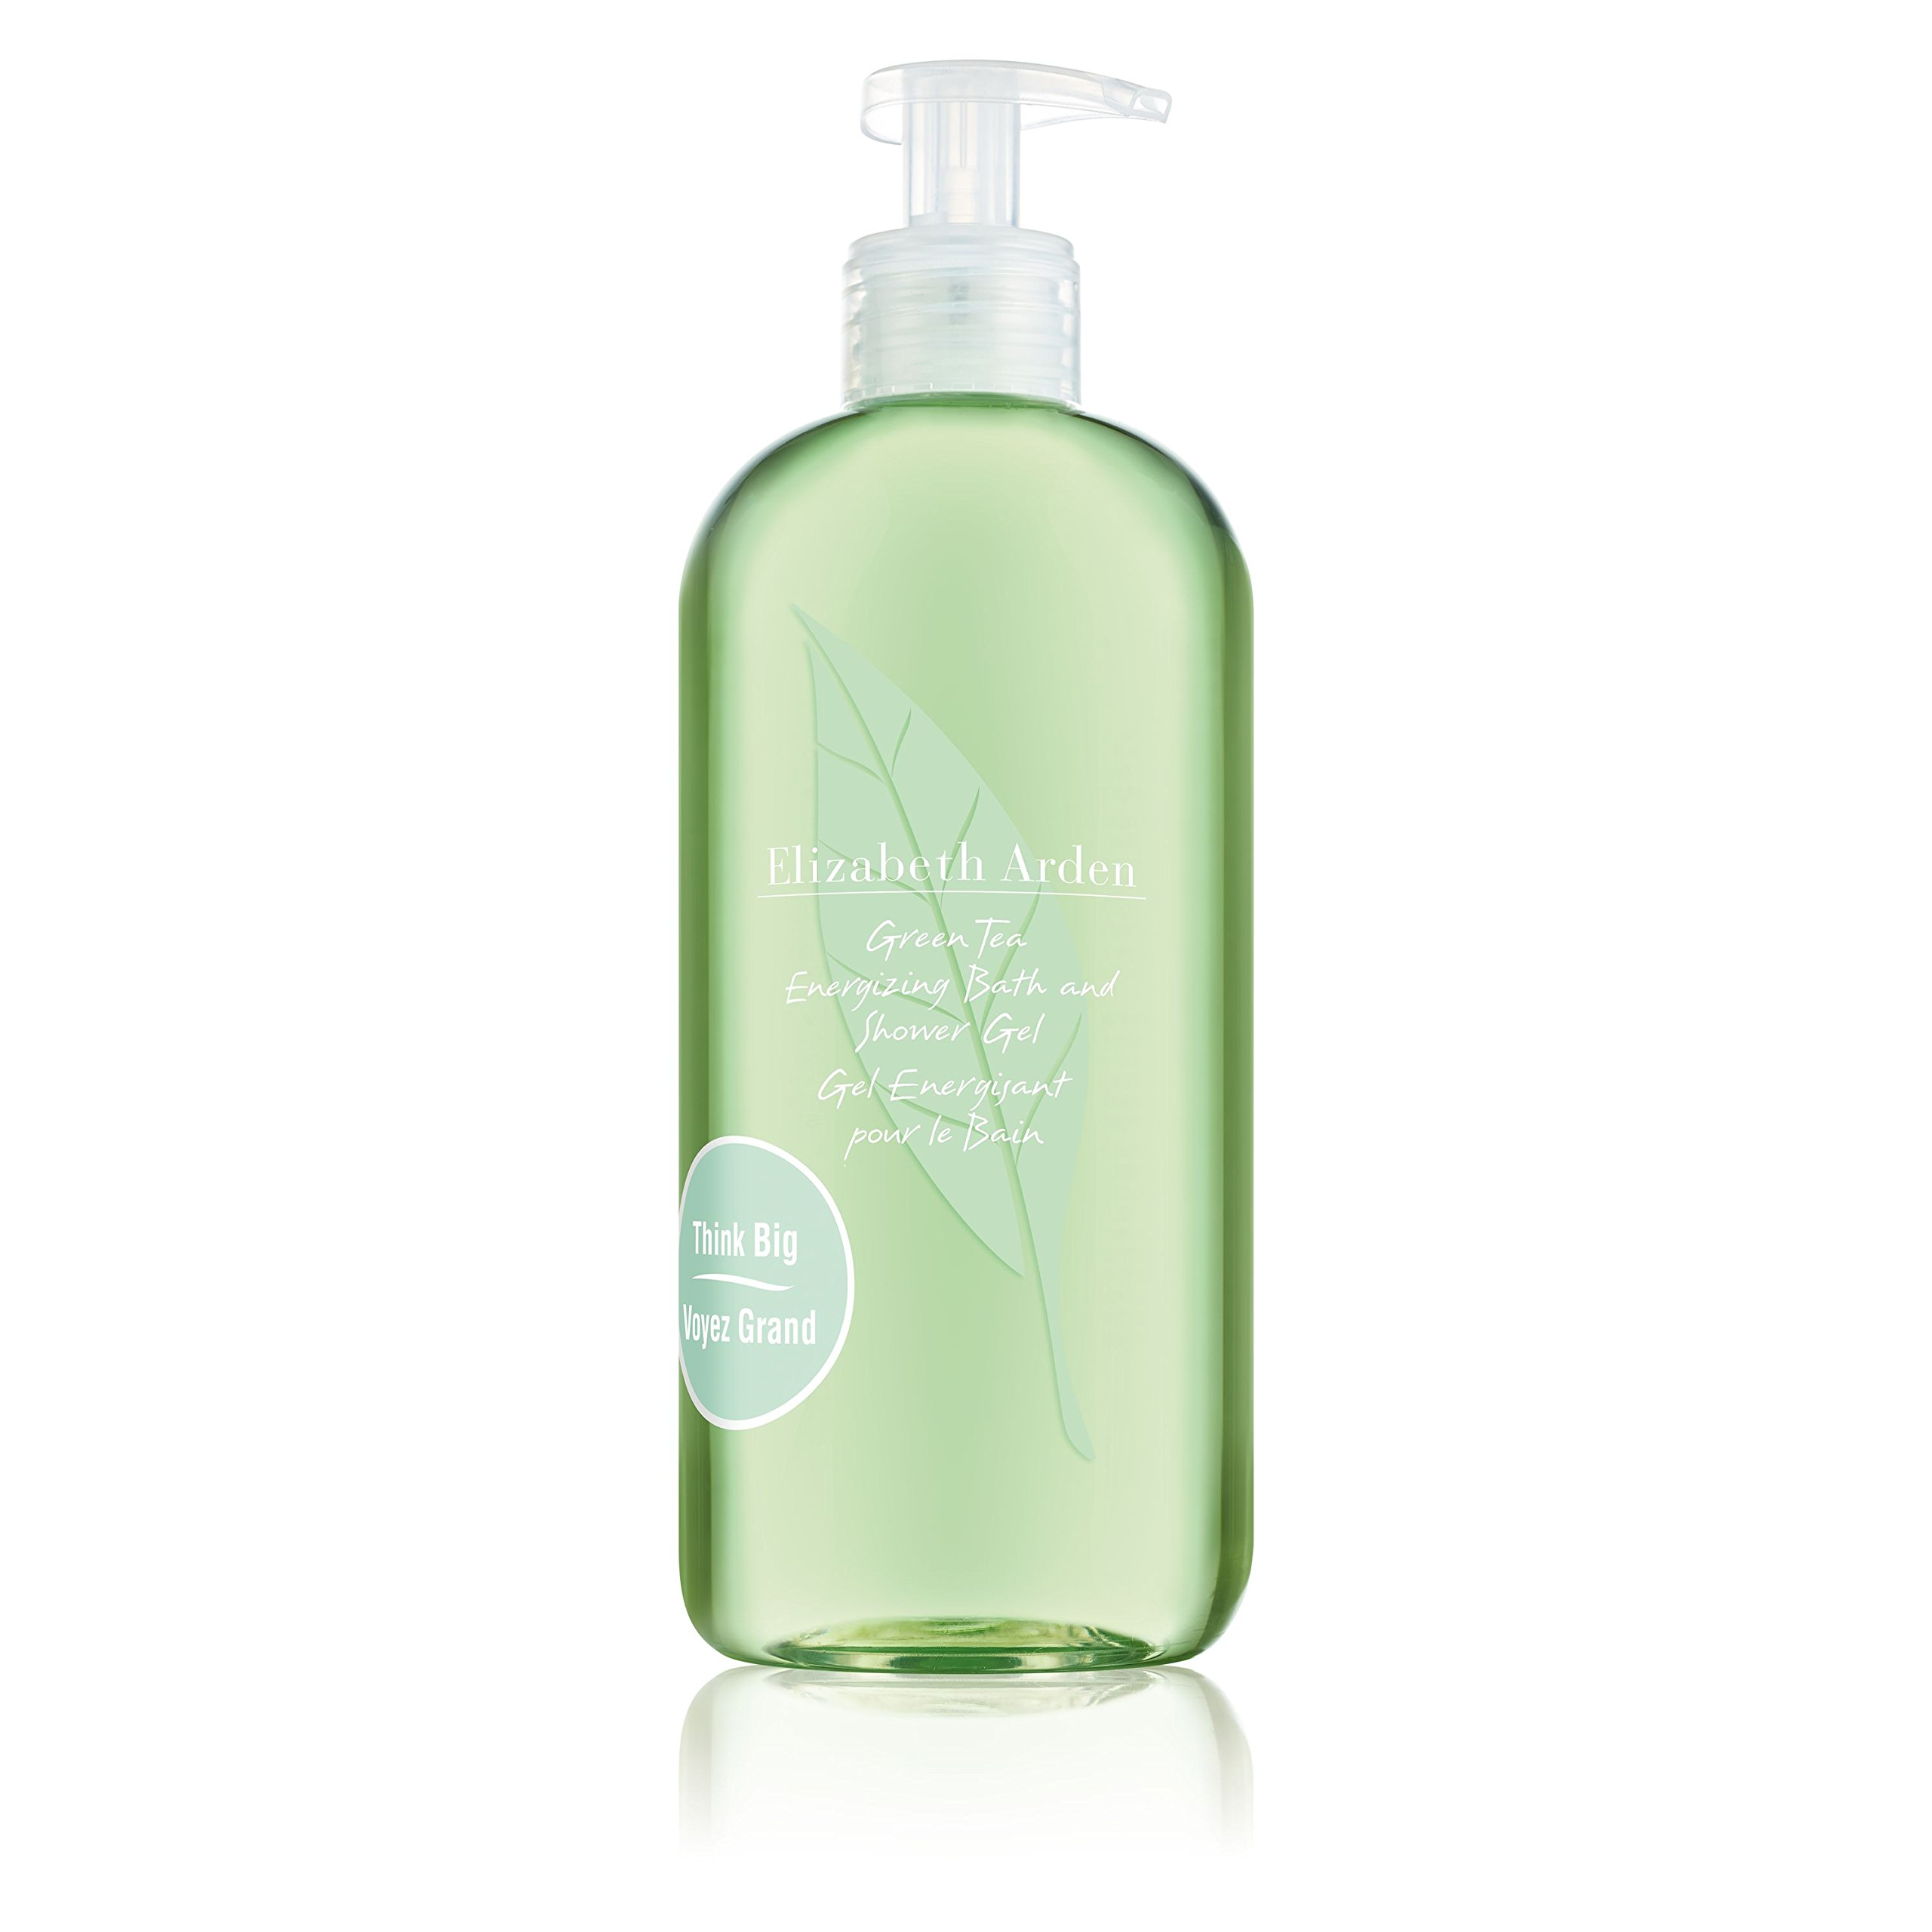 GREEN TEA E. ARDEN GEL DOUCHE 500 ML product image